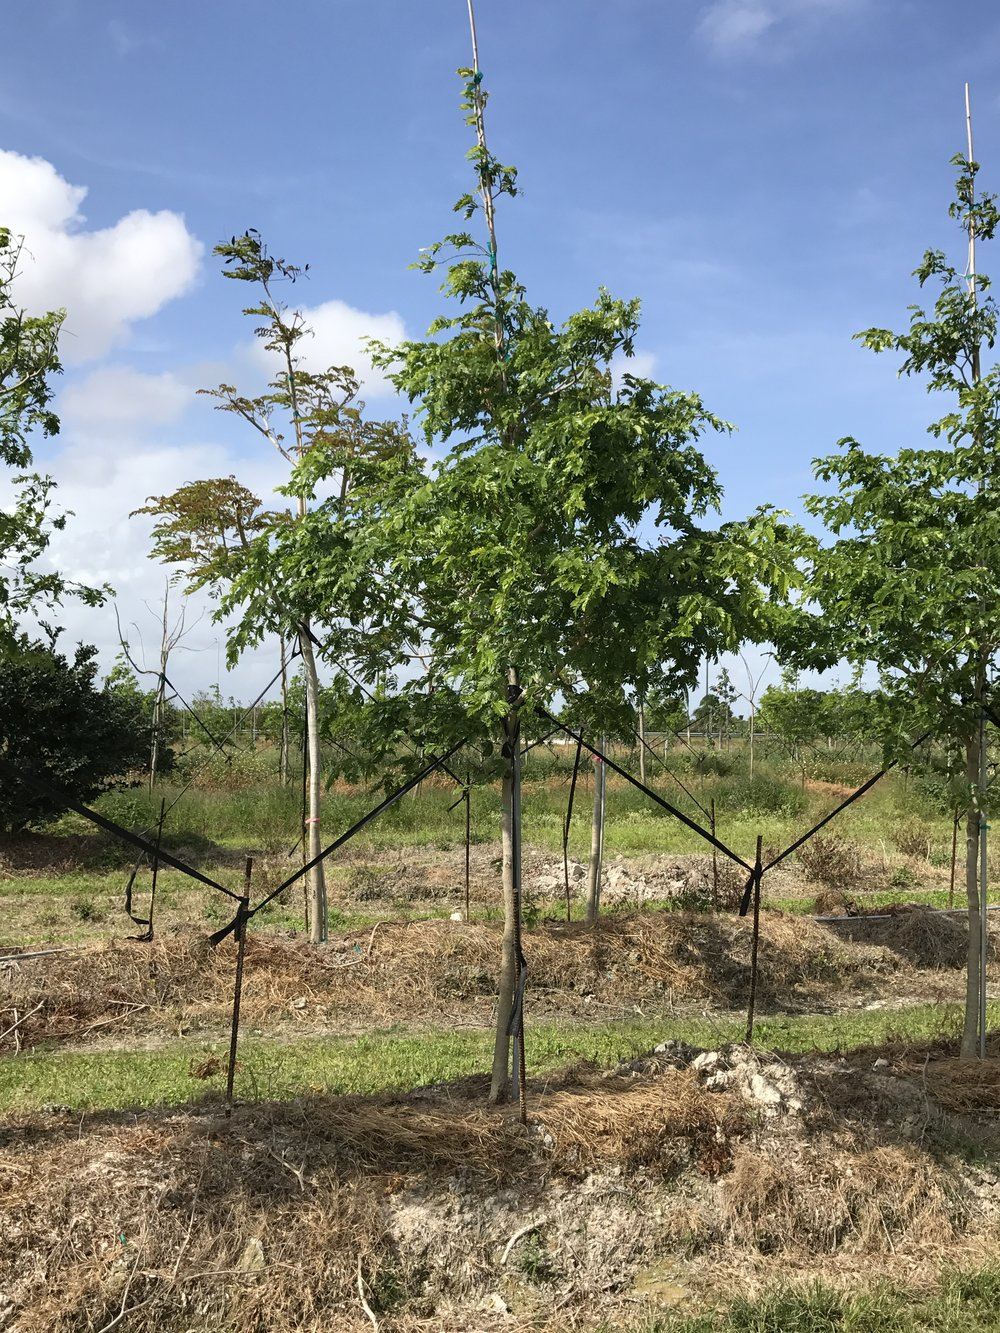 Bulnesia Tree - Field grown in Homestead, Florida